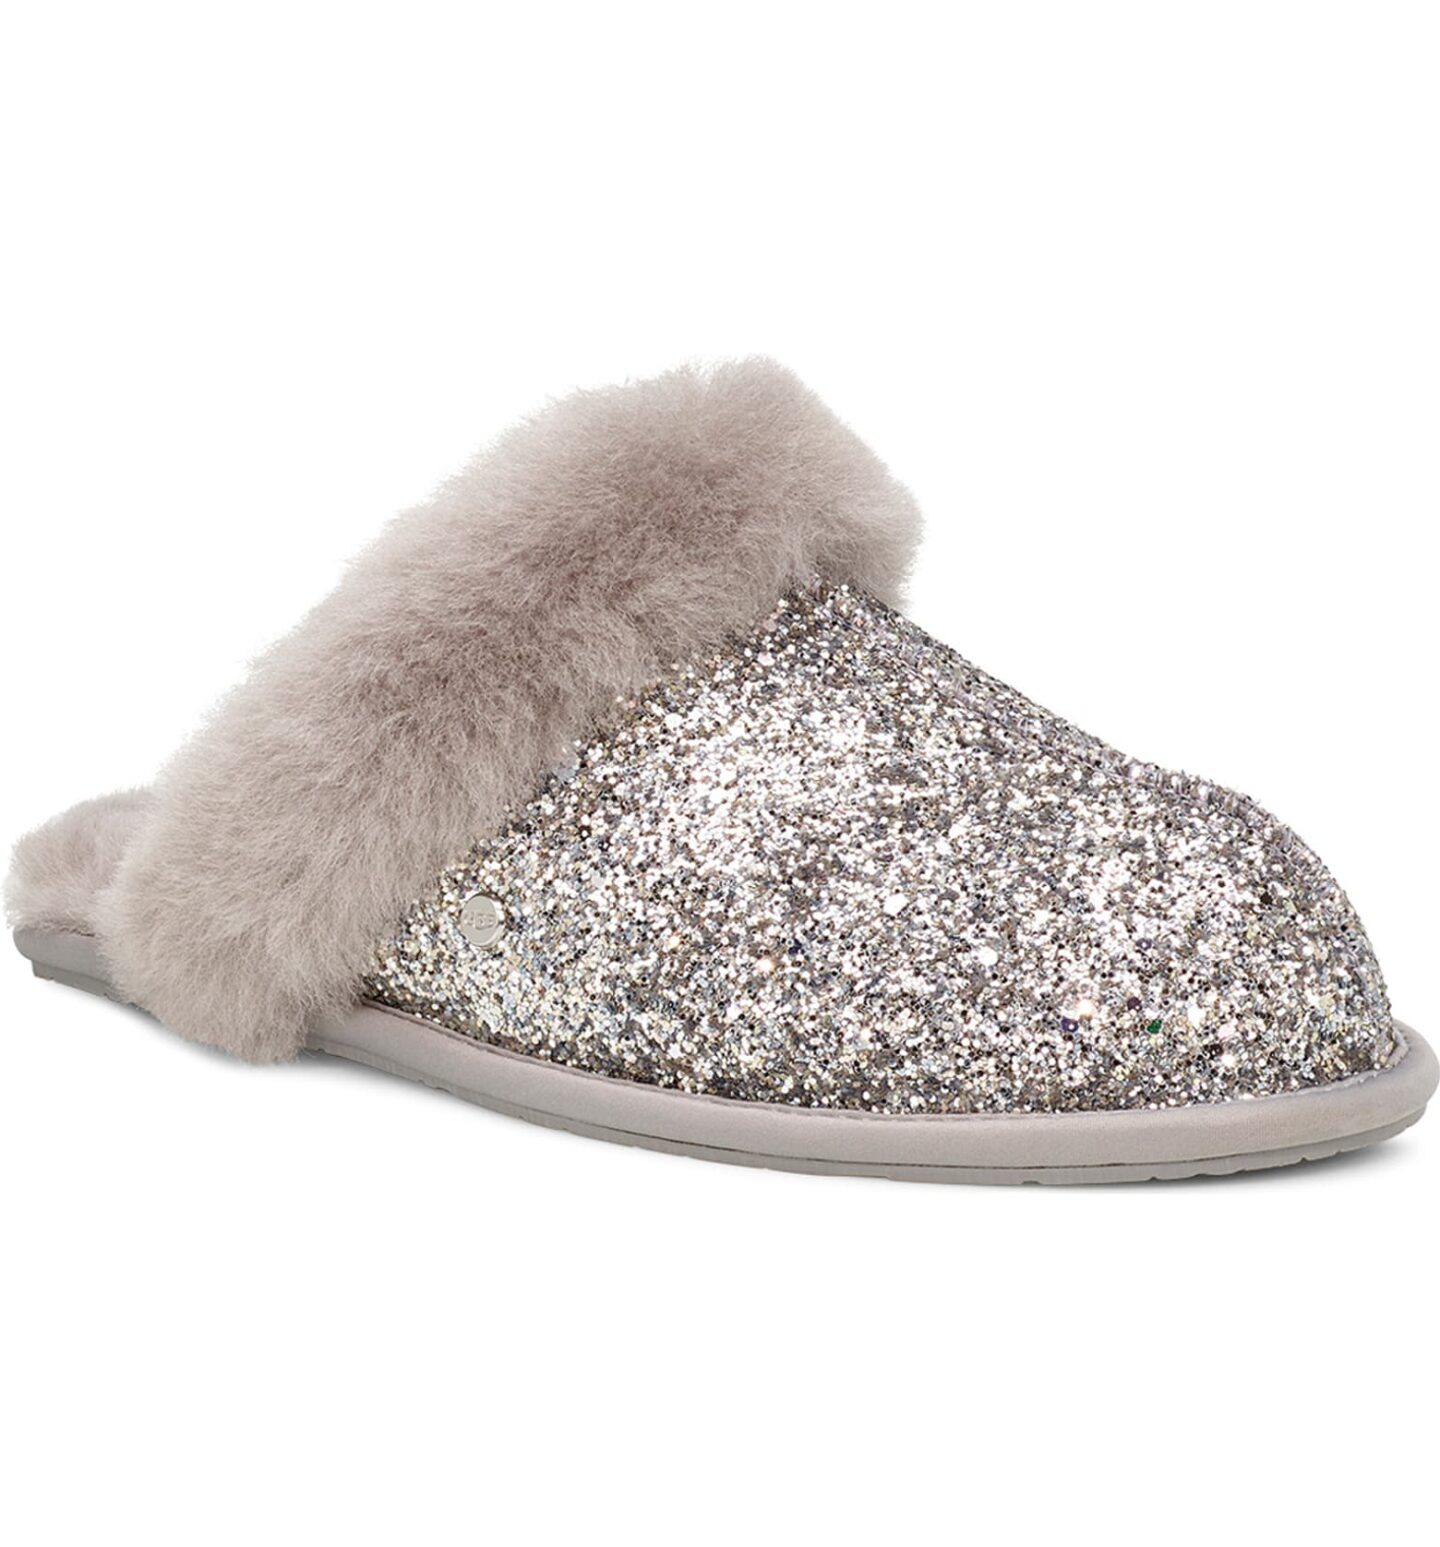 uggs scuffette cosmos slippers